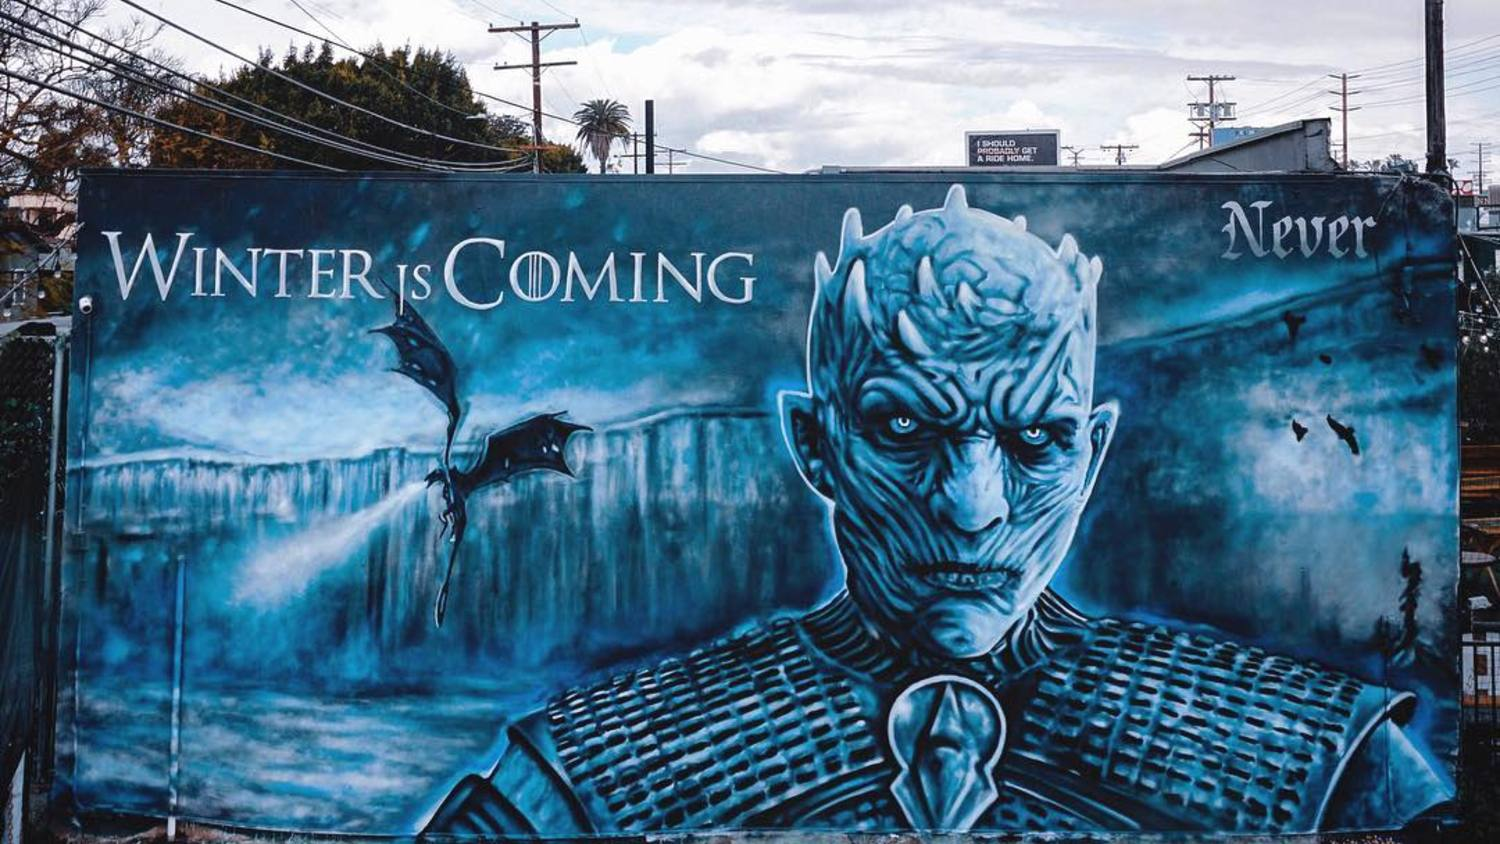 Game of Thrones Night King mural by Jonas Never at Brennan's